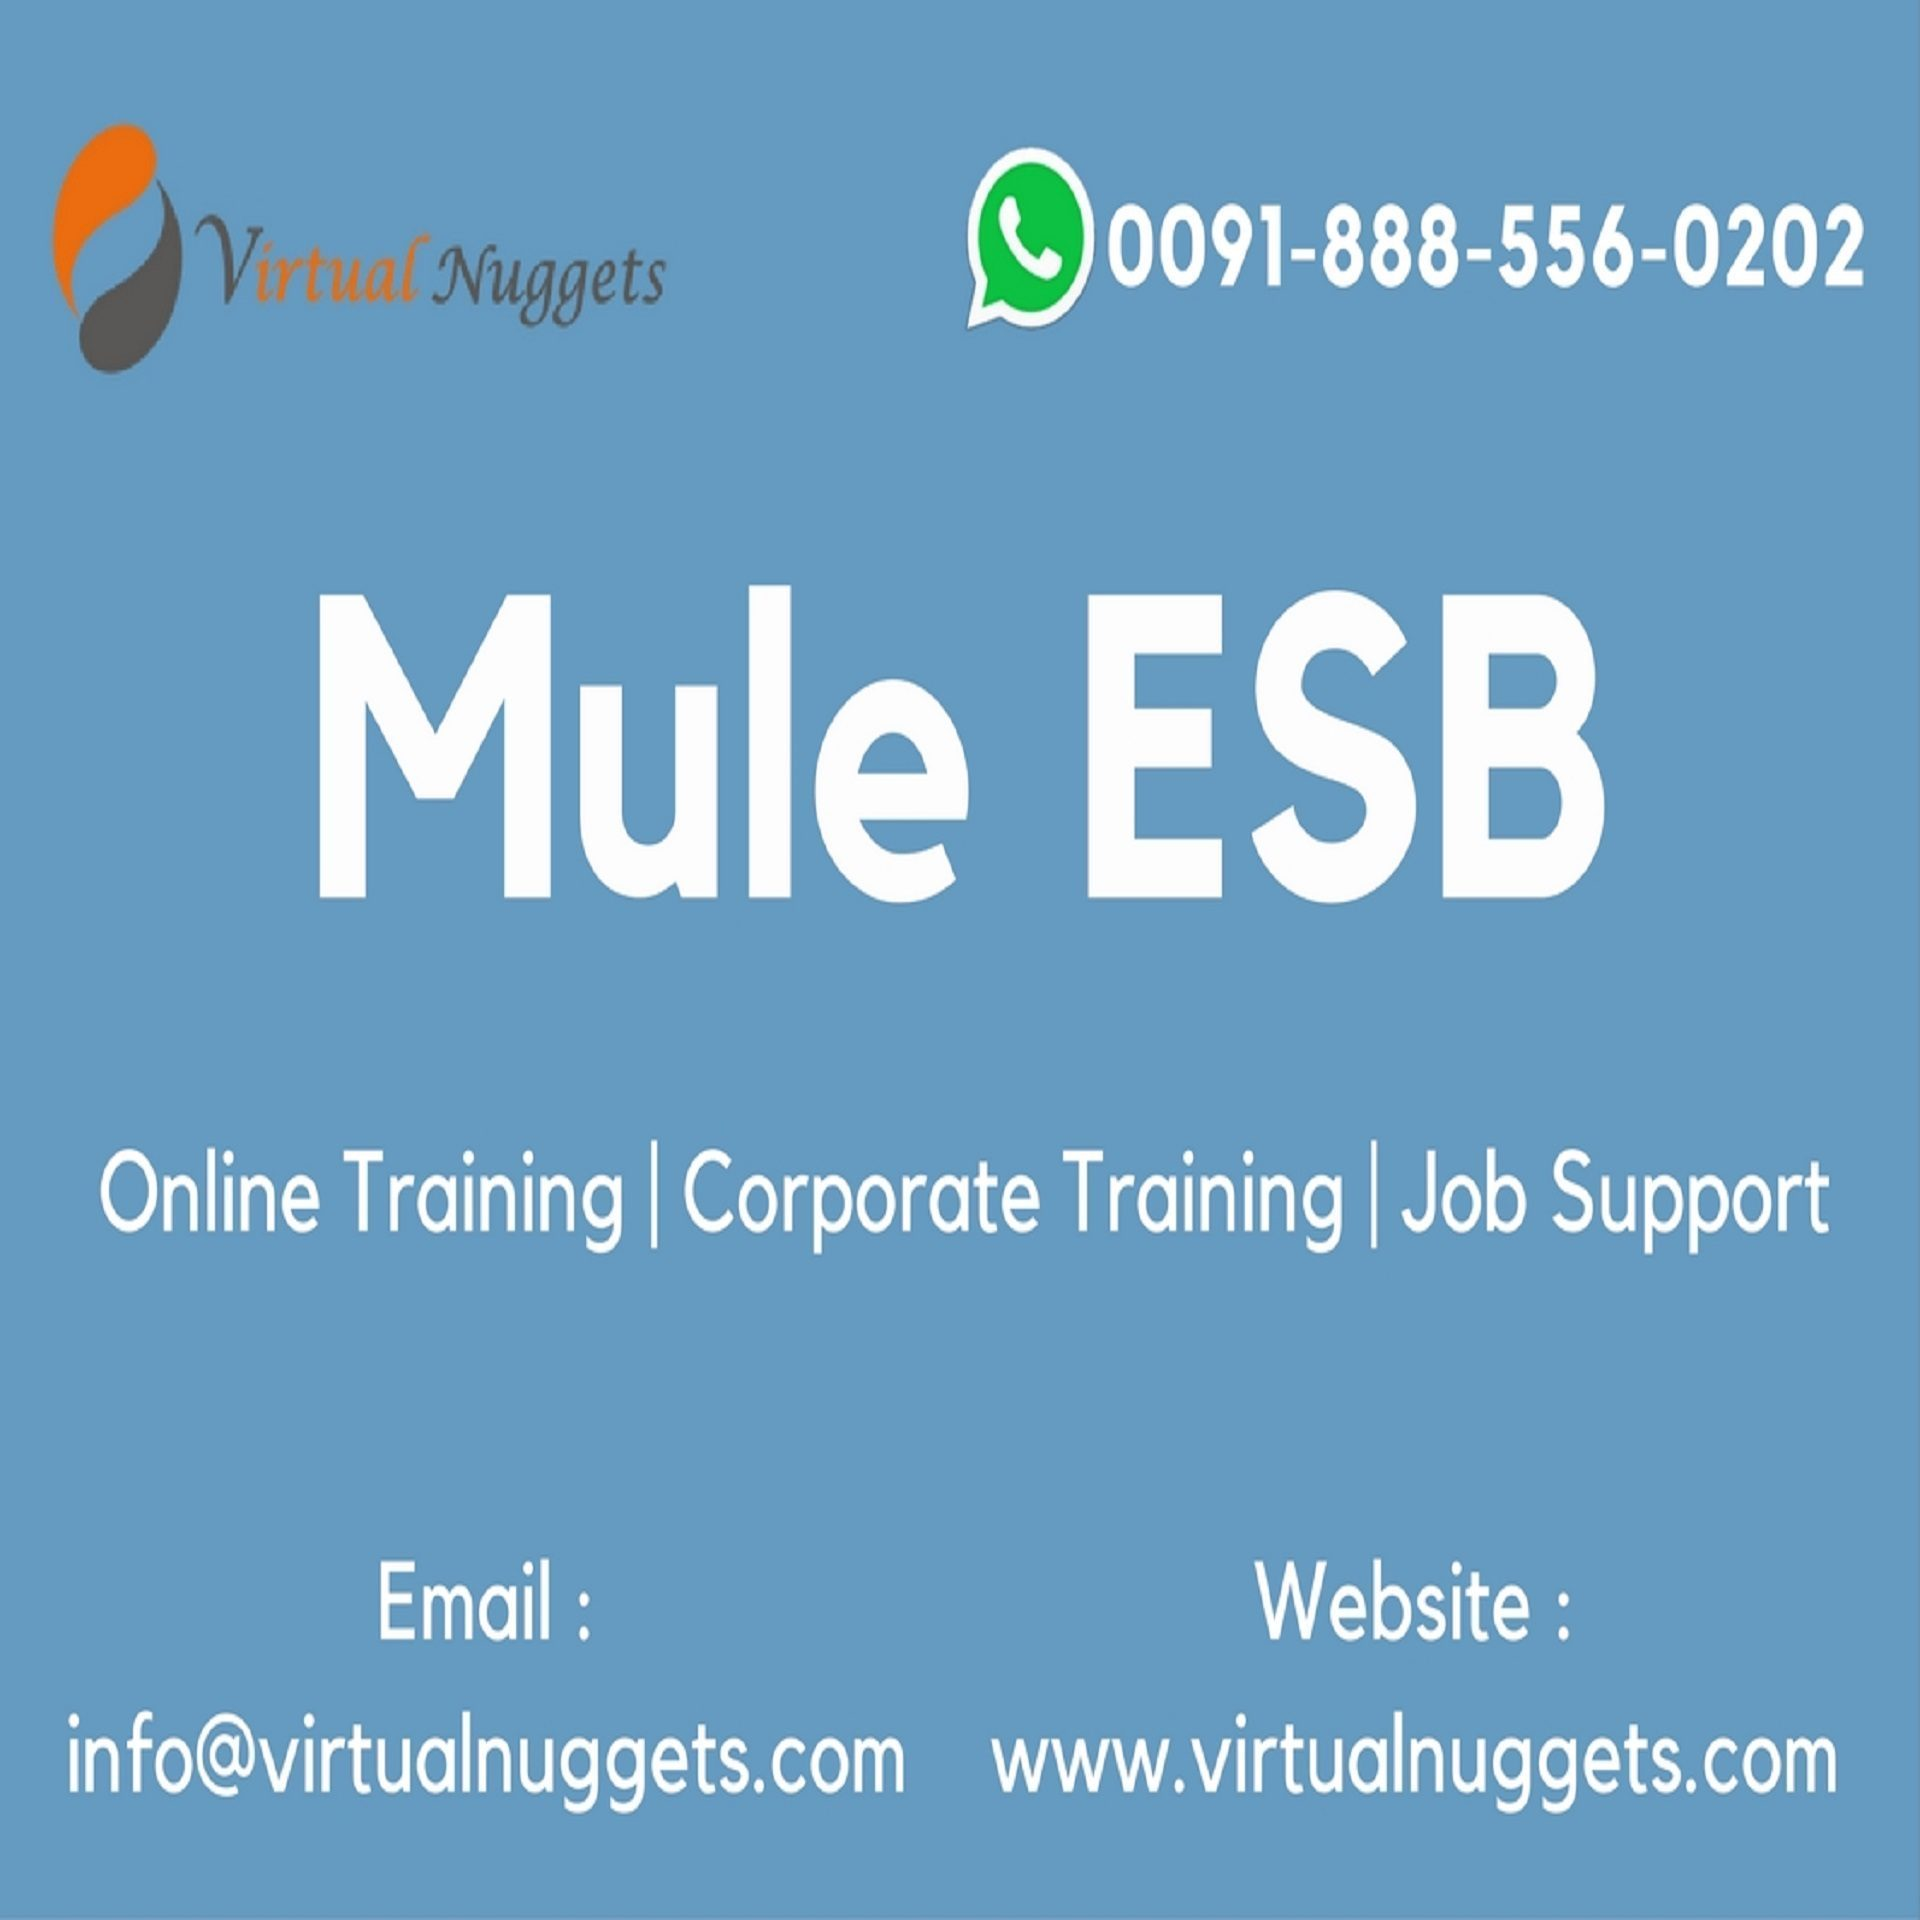 Mule ESB Online Training | Seattle Business Magazine